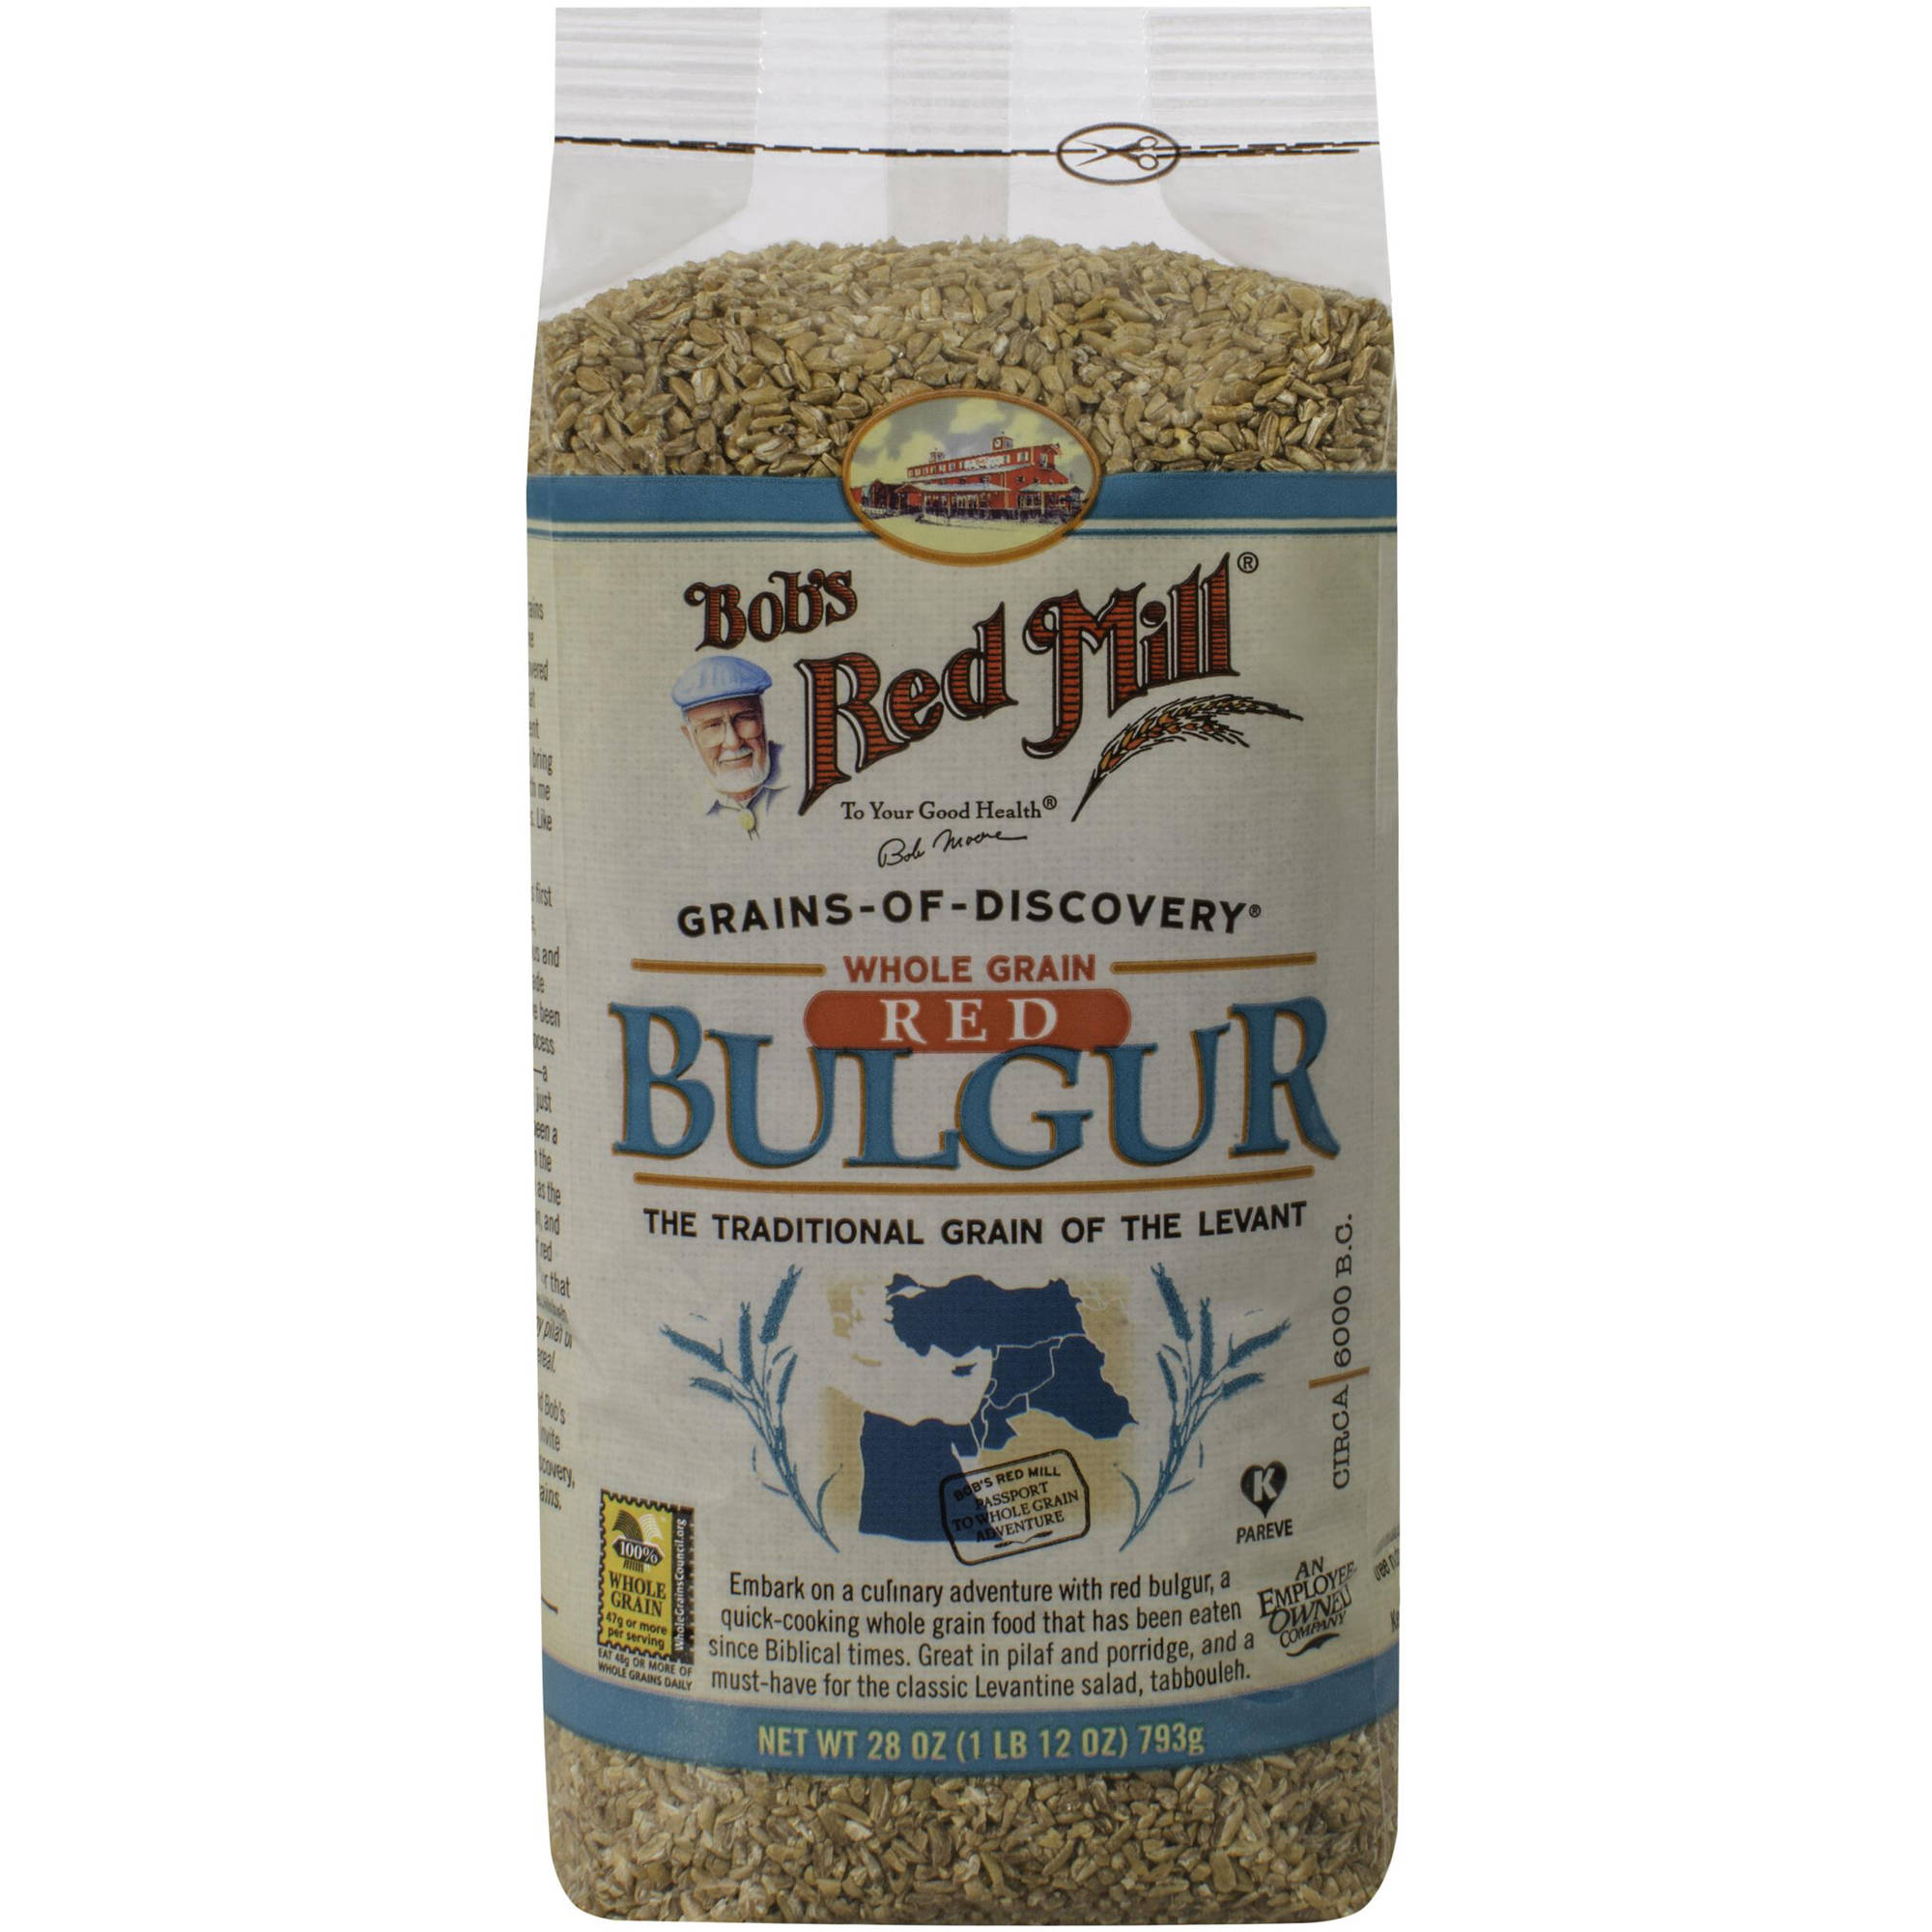 Bob's Red Mill Whole Grain Bulgur Cracked Wheat, 28 oz, (Pack of 4)